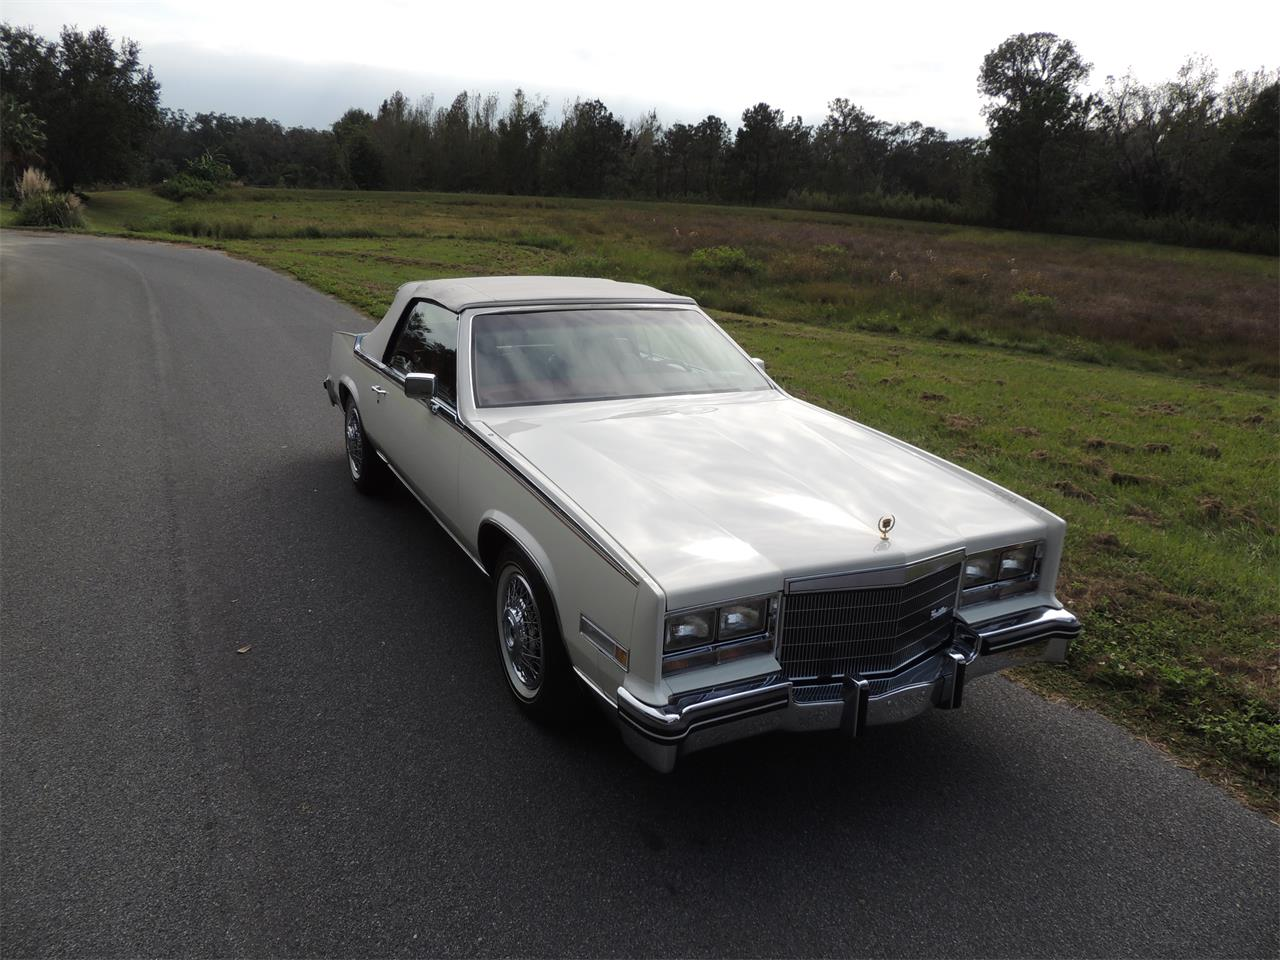 Large Picture of '85 Cadillac Eldorado Biarritz located in Land O Lakes Florida - $19,500.00 - MDP6